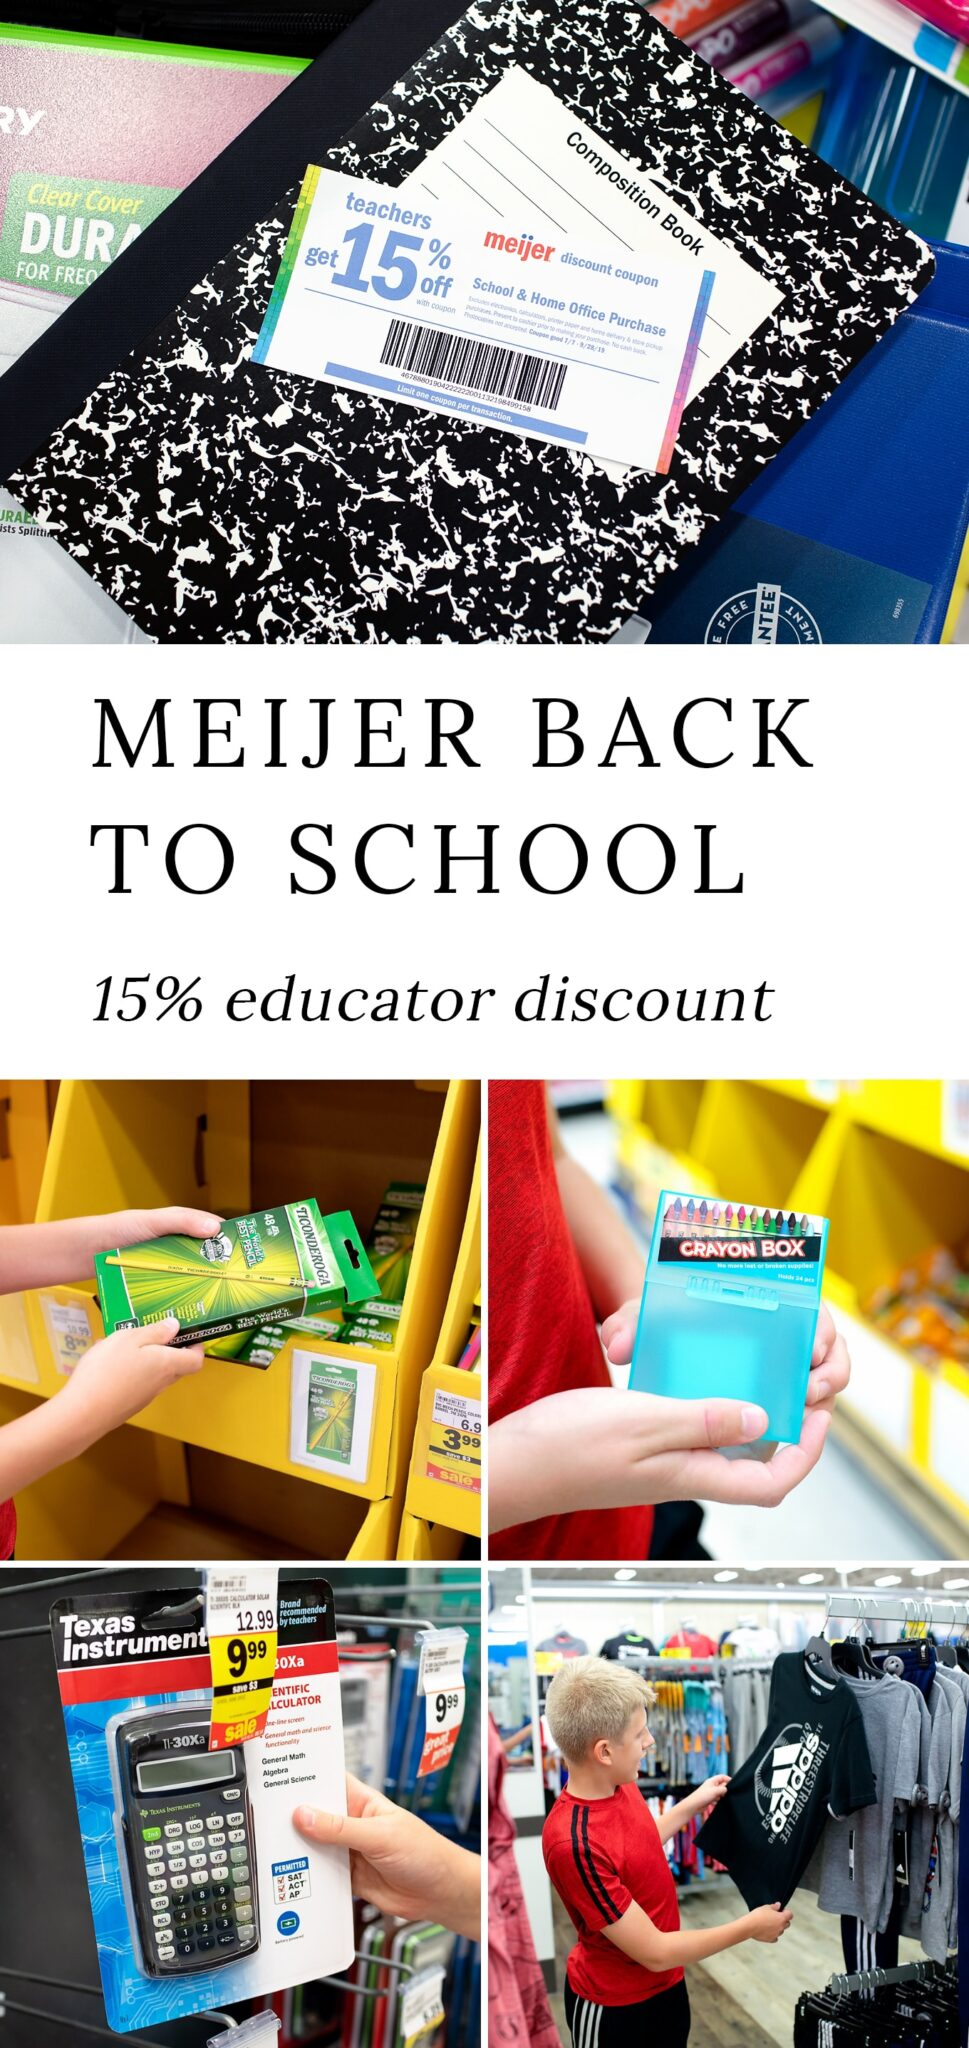 Meijer is making back-to-school shopping just a little easier for teachers and homeschoolers by offering a 15% discount on school and home office purchases. #sponsored #backtoschool  via @firefliesandmudpies